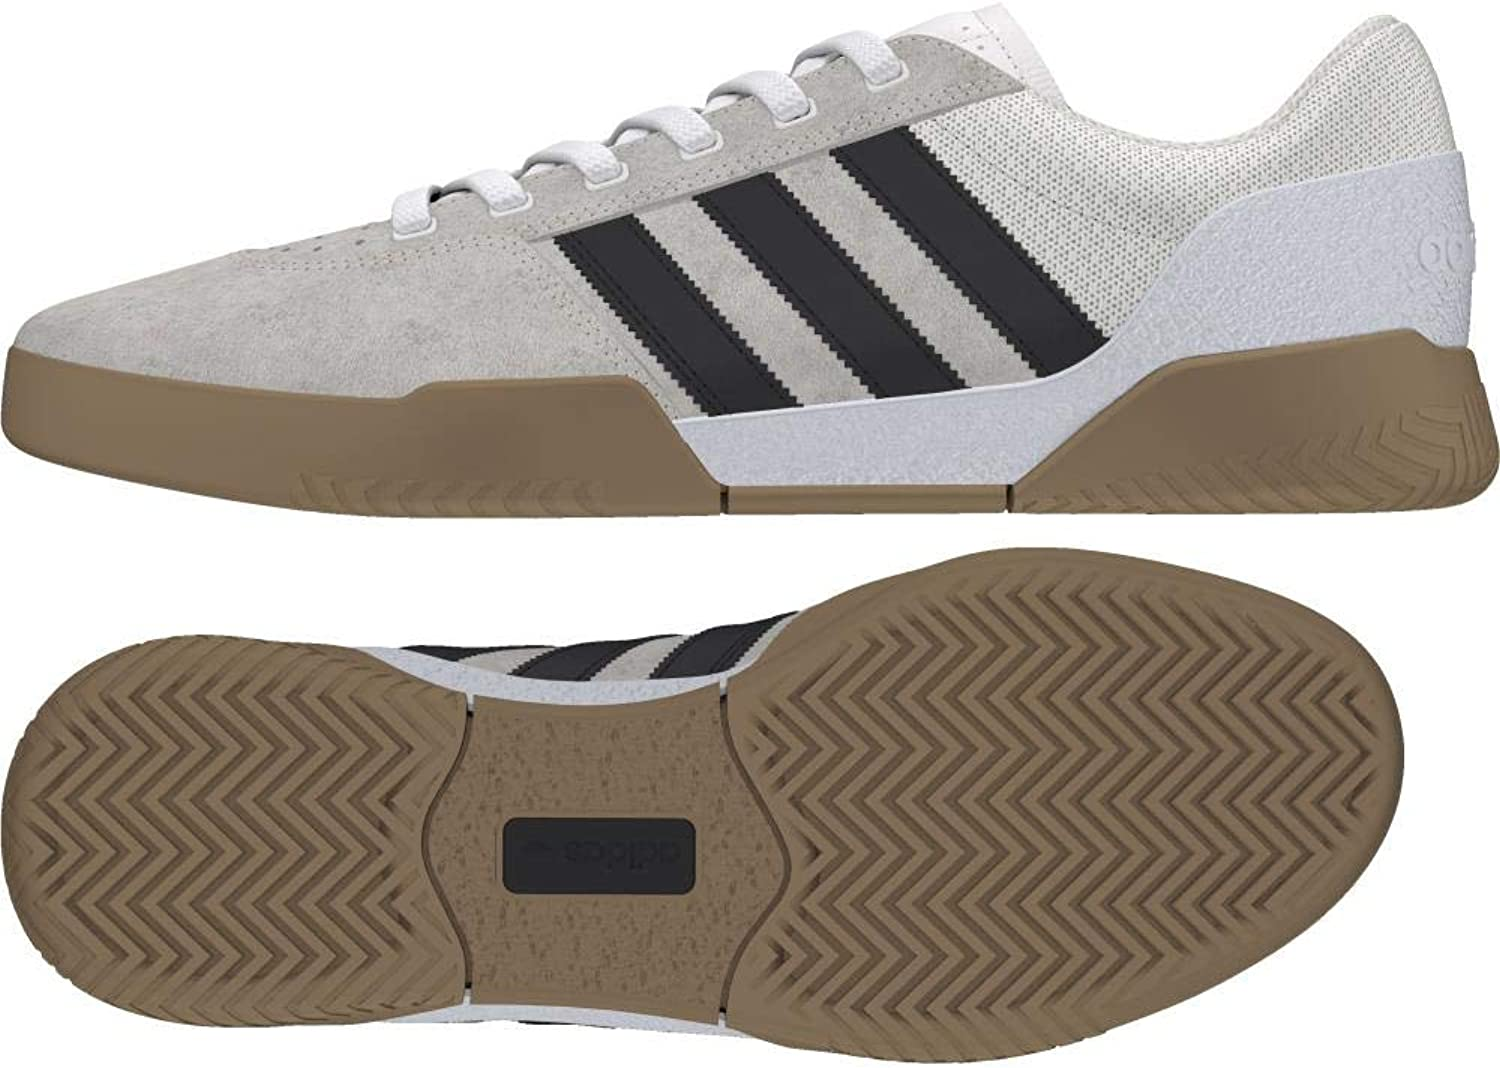 Adidas City Cup shoes - White Black Gum